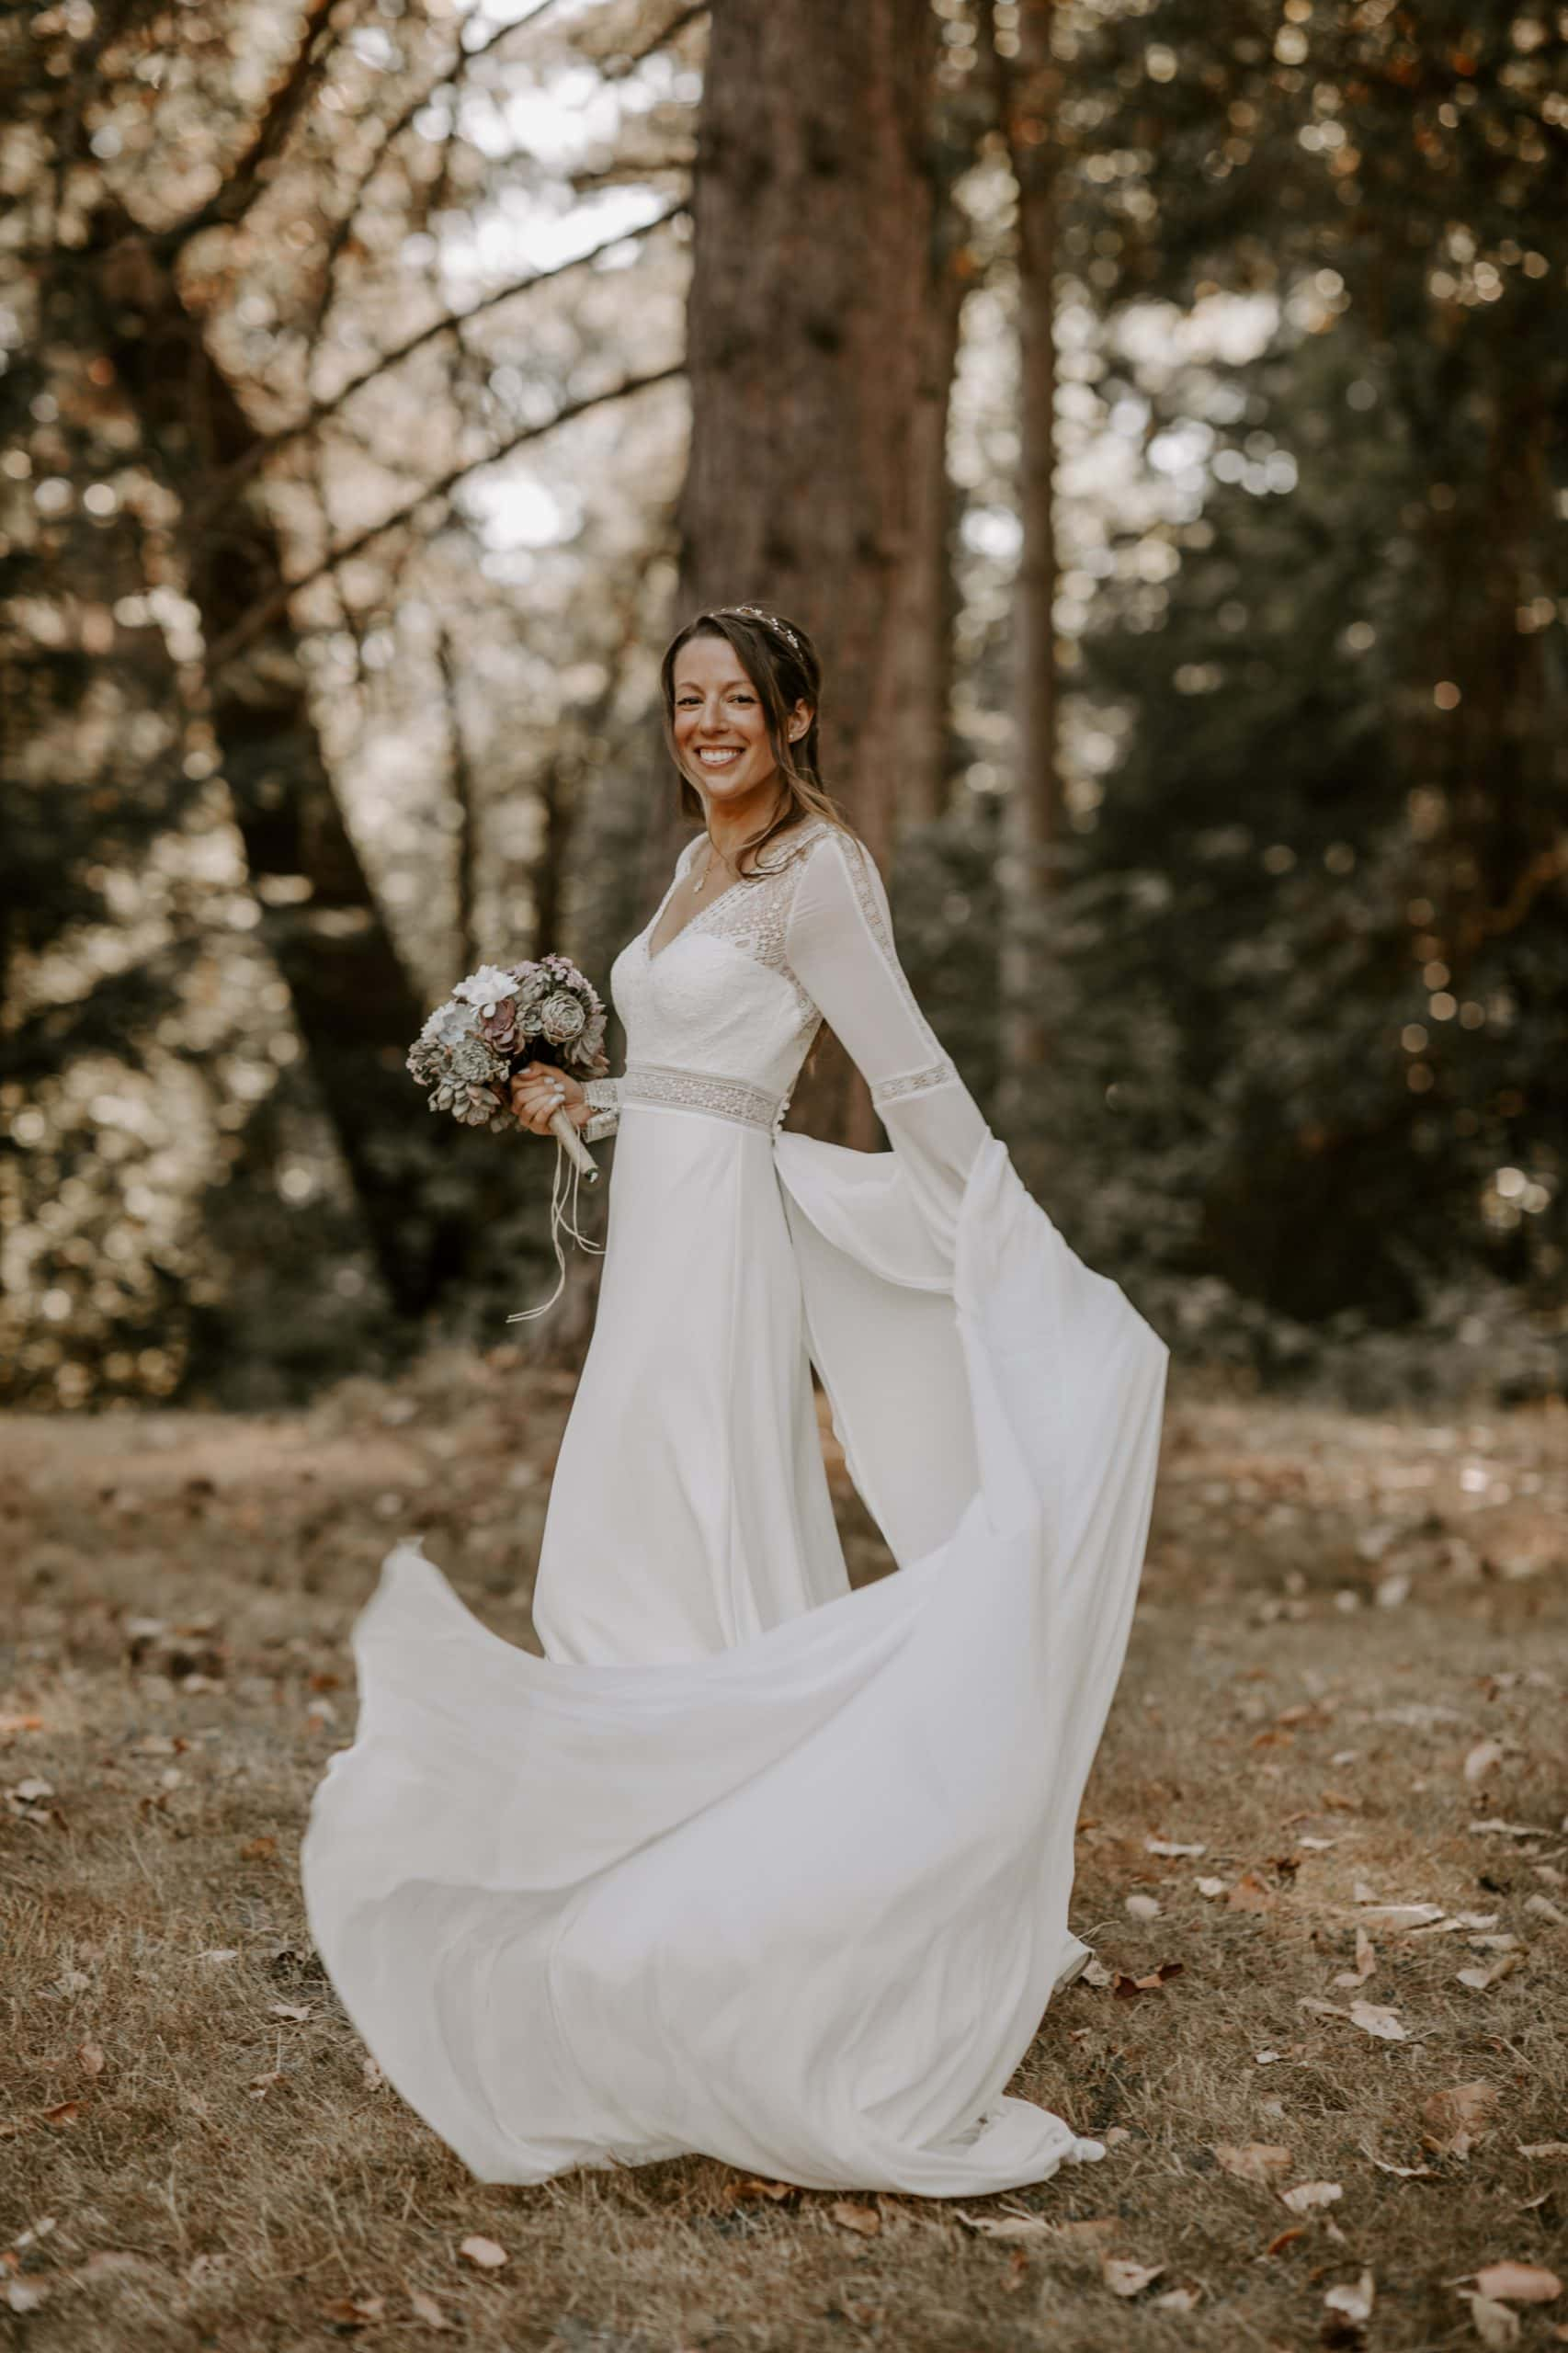 Smiling bride waving her beautiful wedding dress in a forest in Seward Park, Seattle